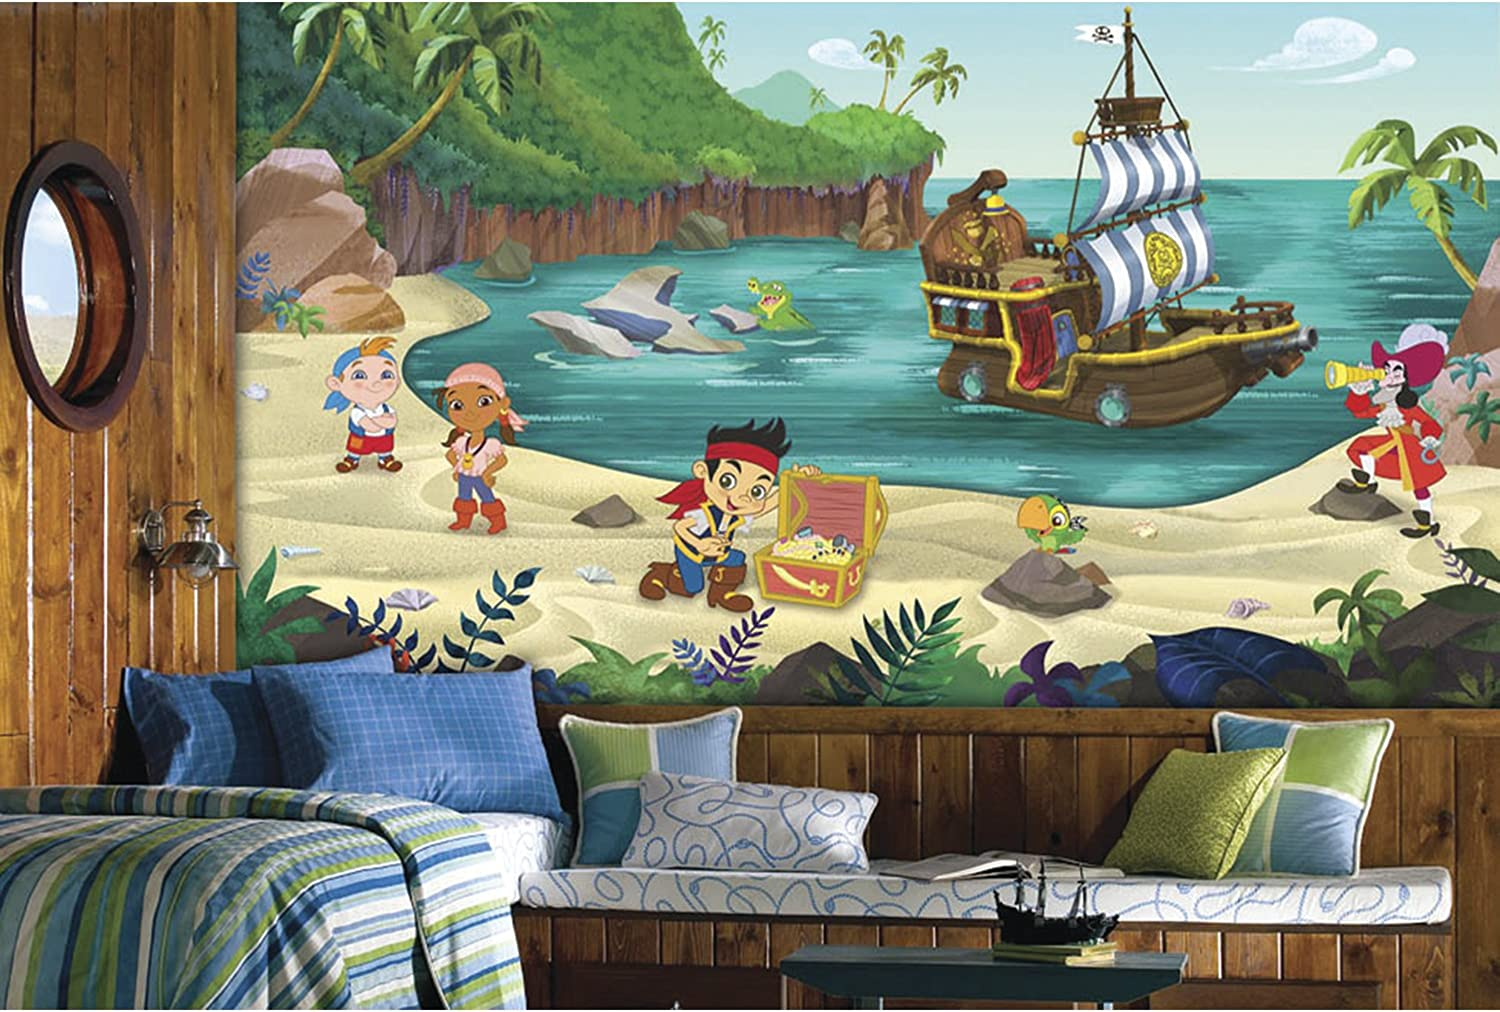 RoomMates Jake And The Never Land Pirates Prepasted, Removable Wall Mural - 6' X 10.5'